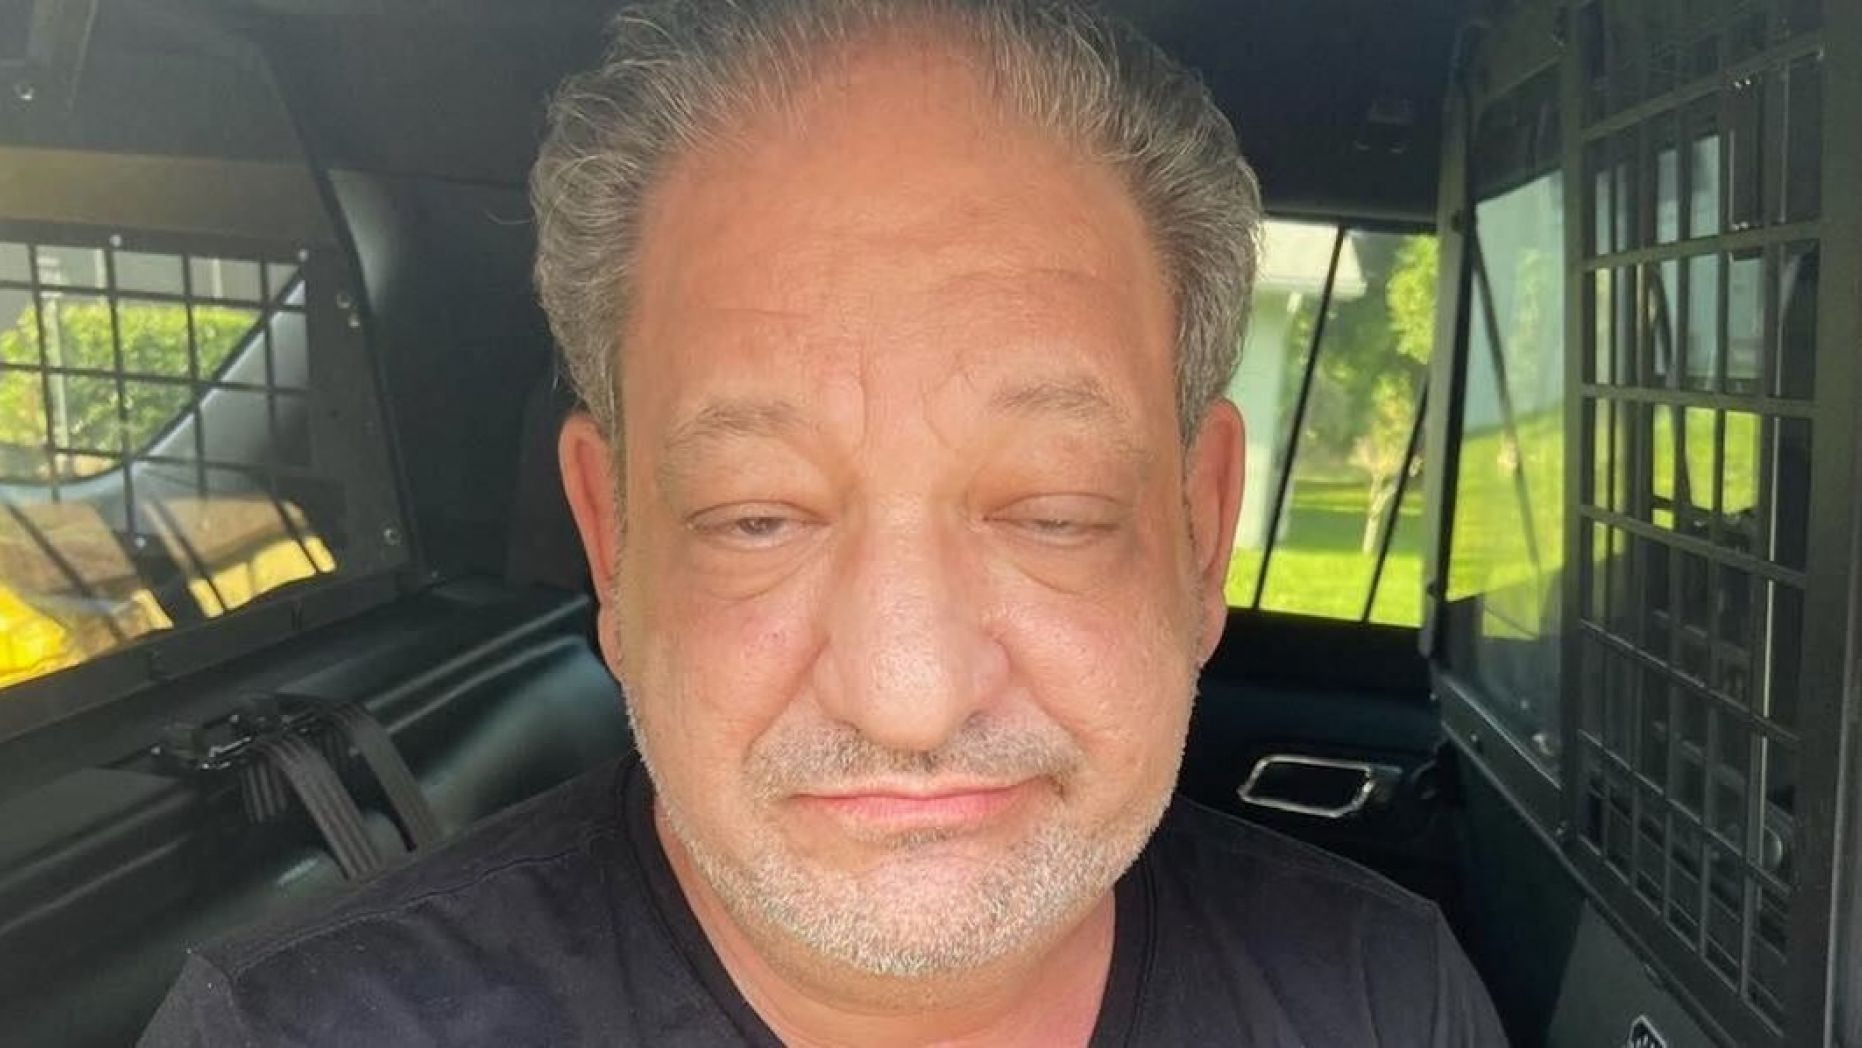 Robert Kovner, 62, of Sebring, Florida, was arrested for allegedly a mass shooting at a local supermarket because not enough people were wearing masks